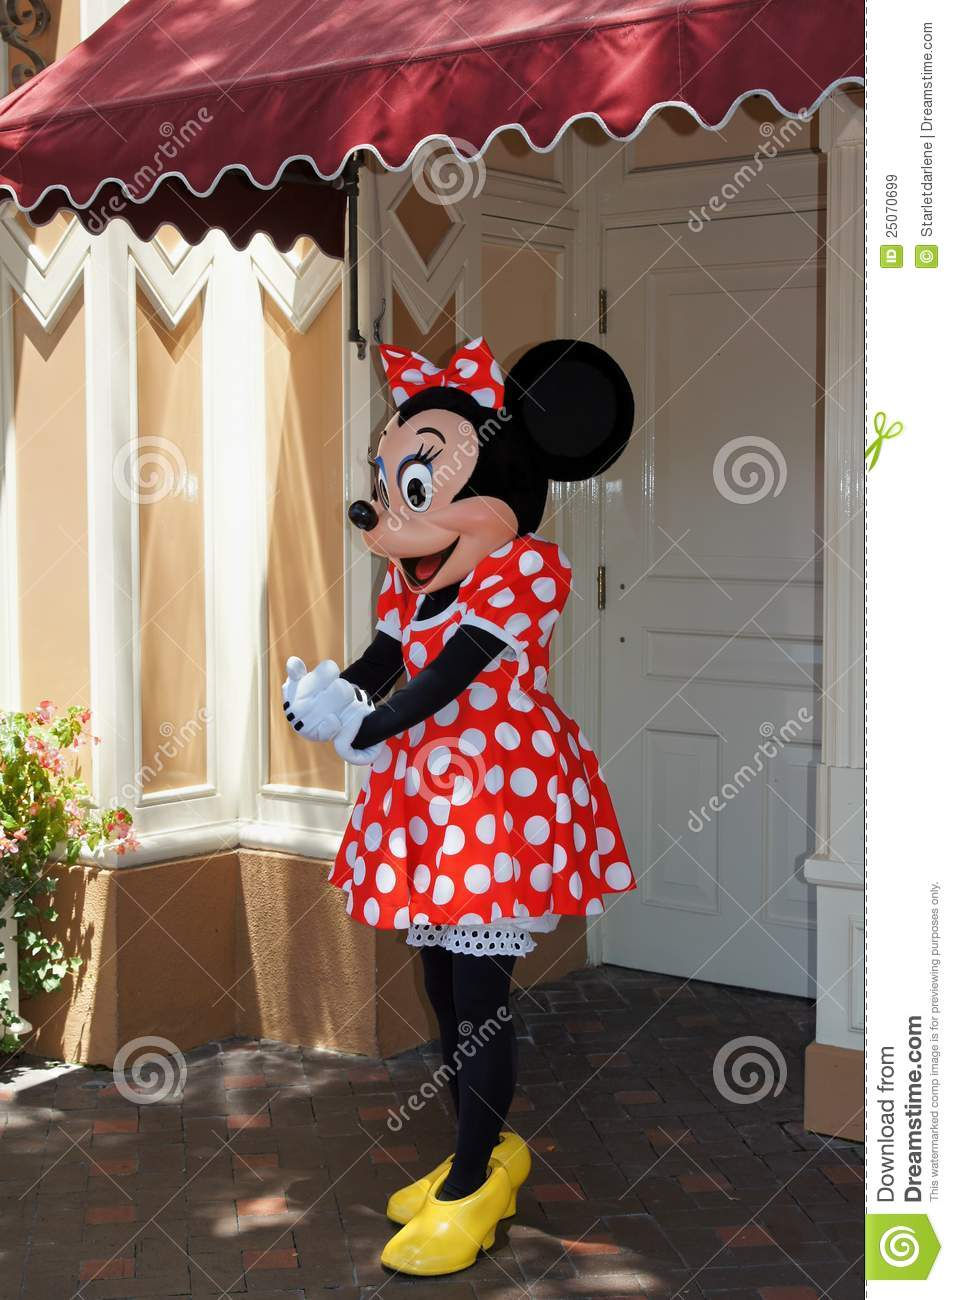 Minnie Mouse Disneyland Editorial Stock Image Image Of